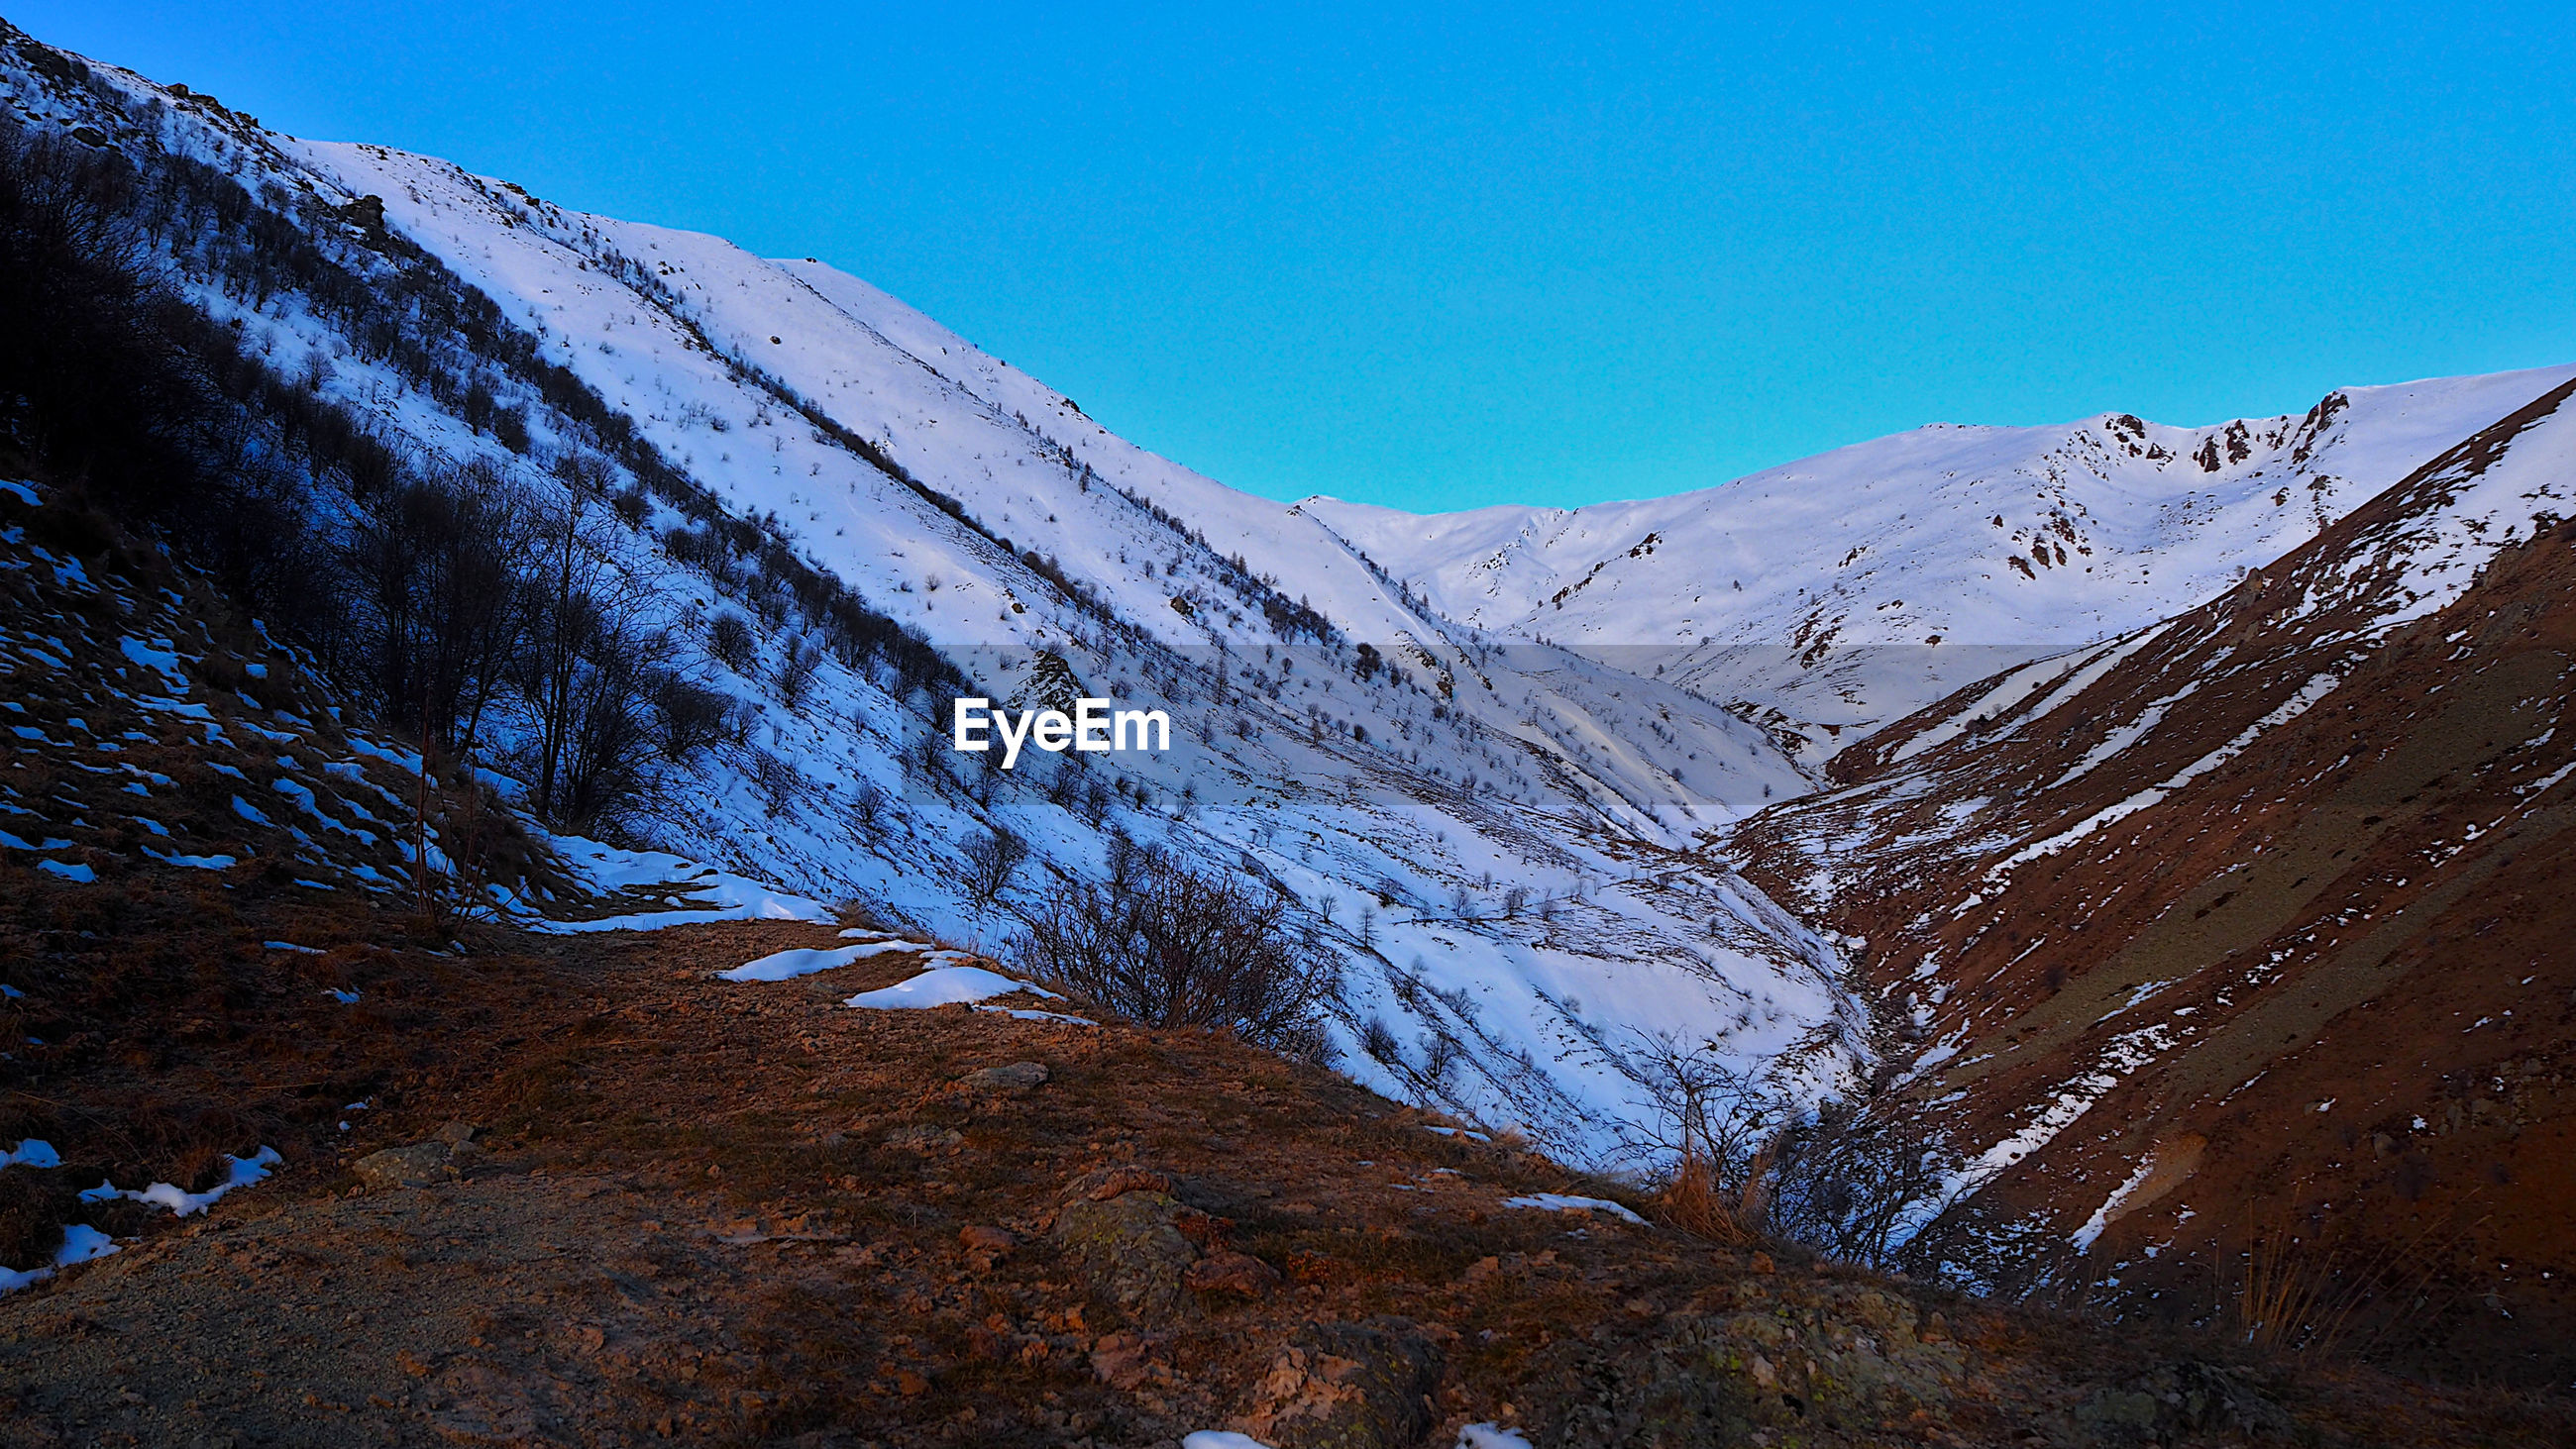 Scenic view of snowcapped mountains against clear blue sky, northern side of pizzo d'ormea